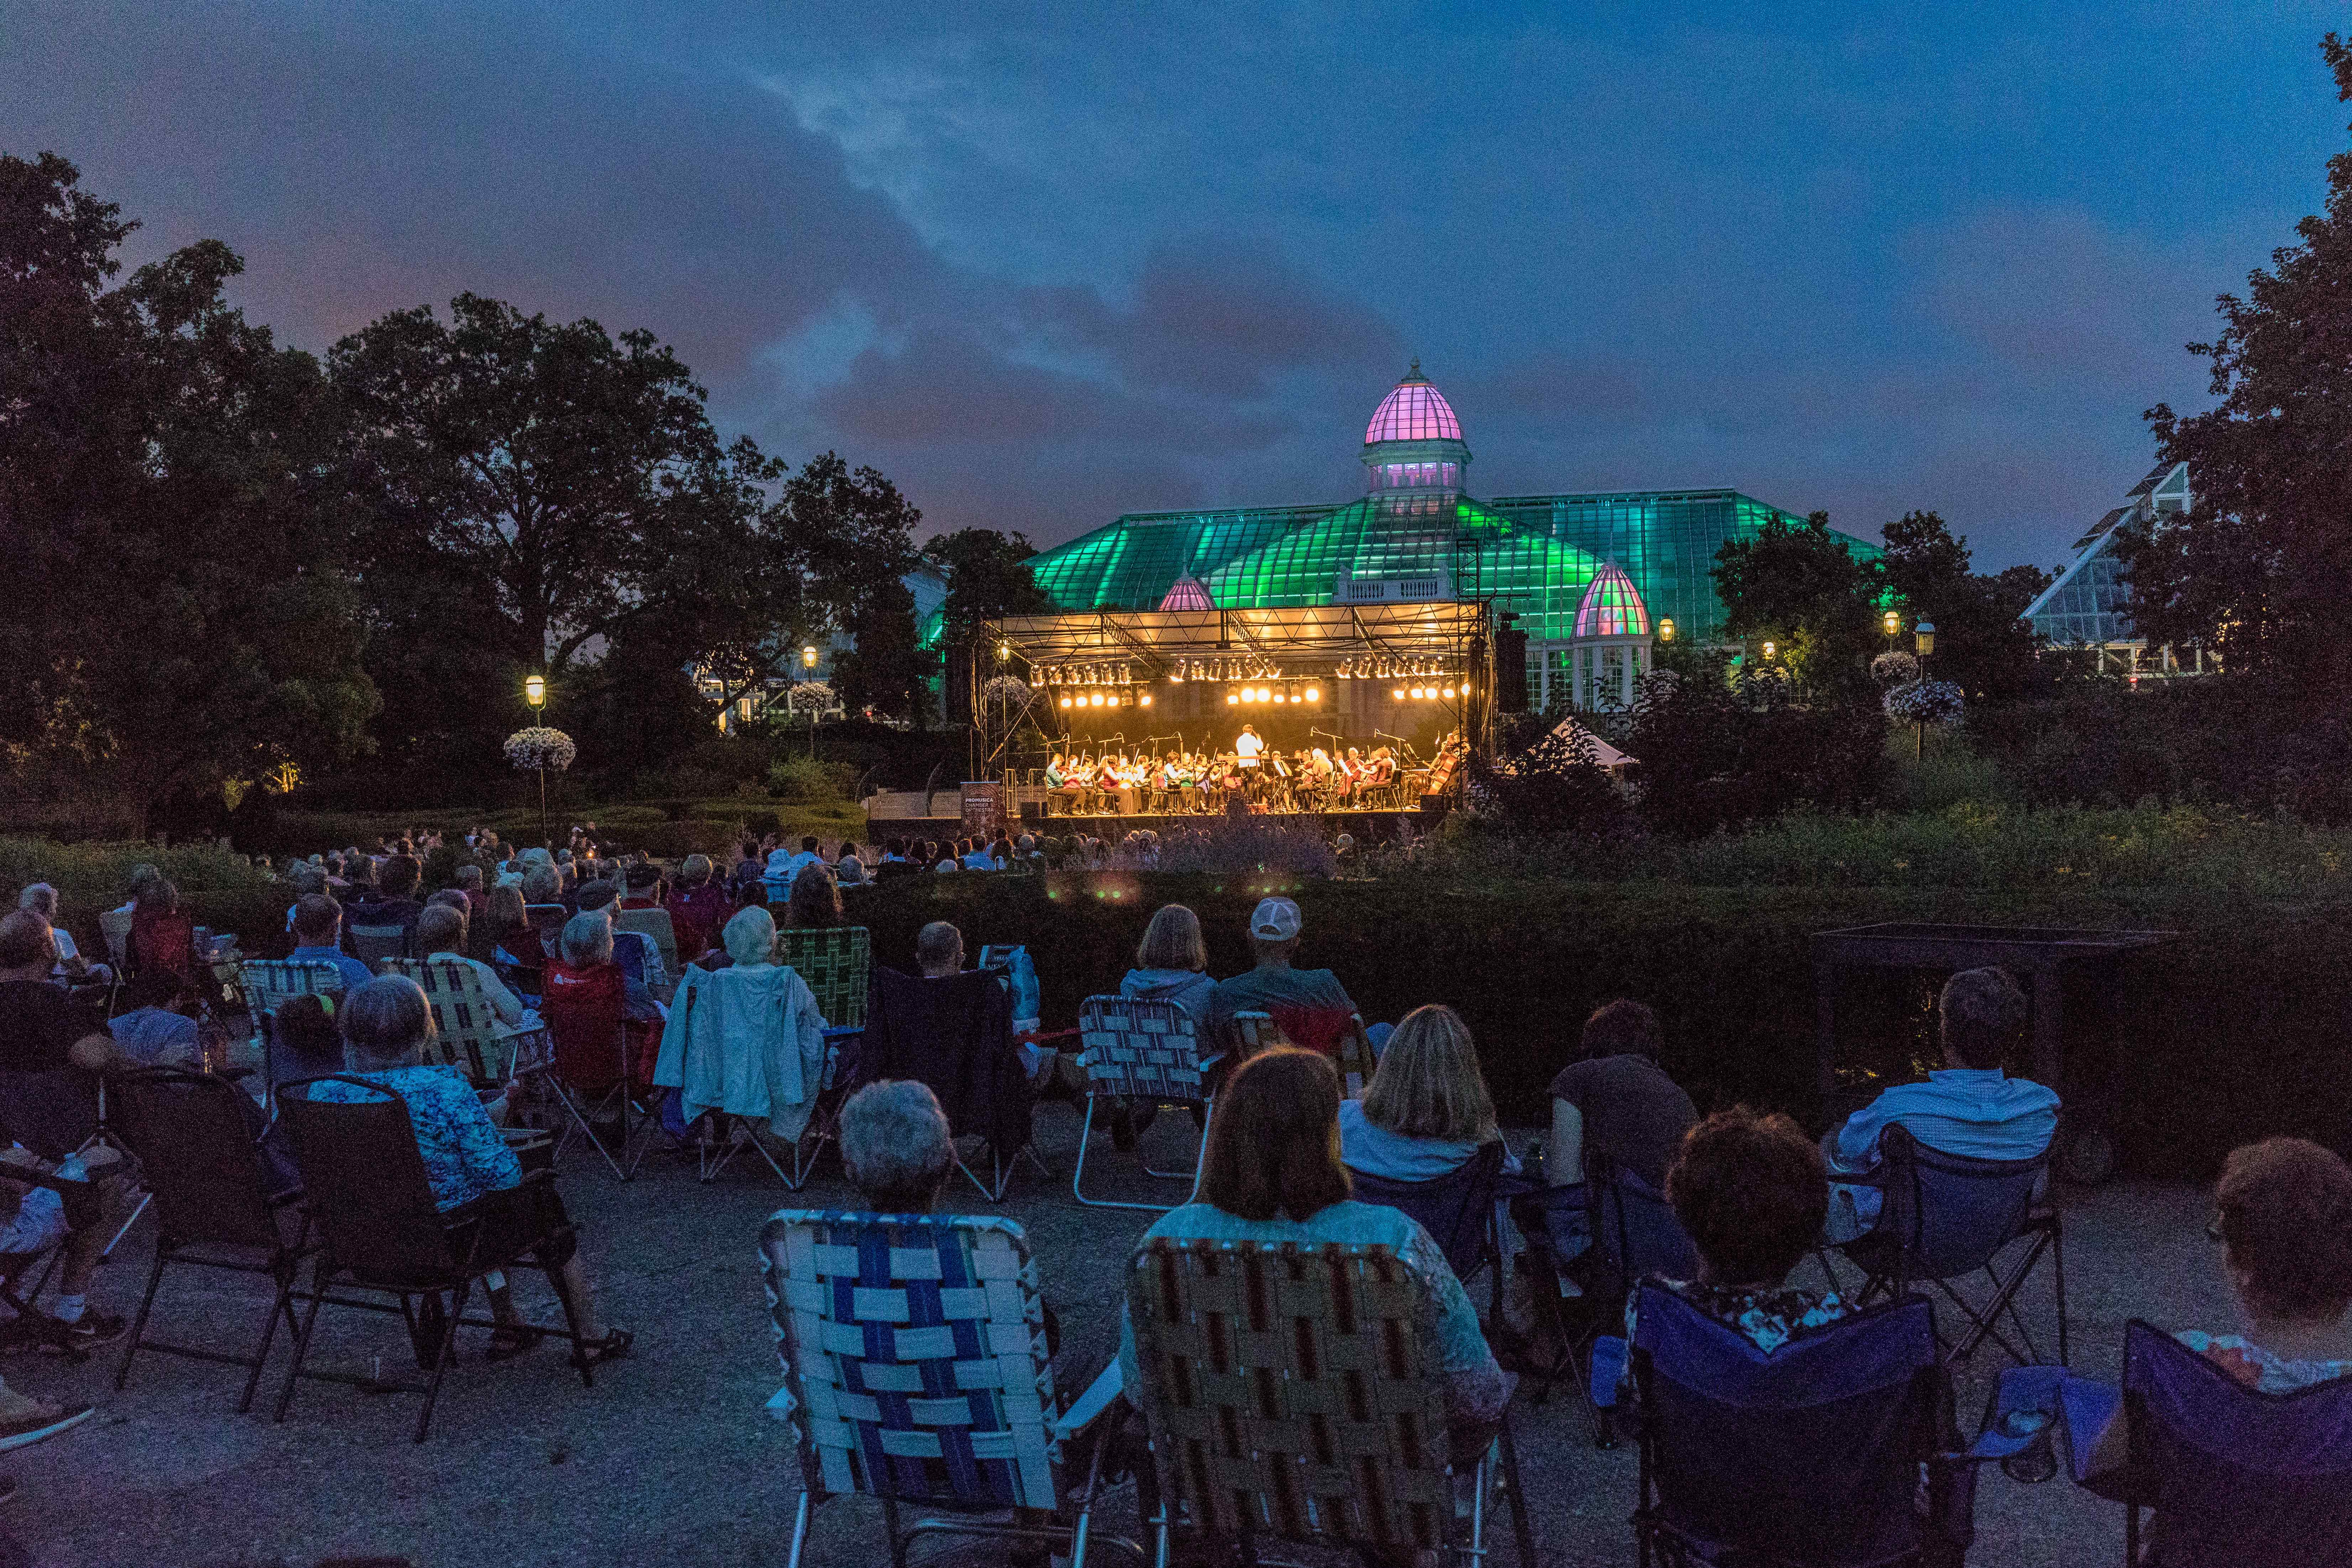 ProMusica to play summer concerts again at Franklin Park Conservatory